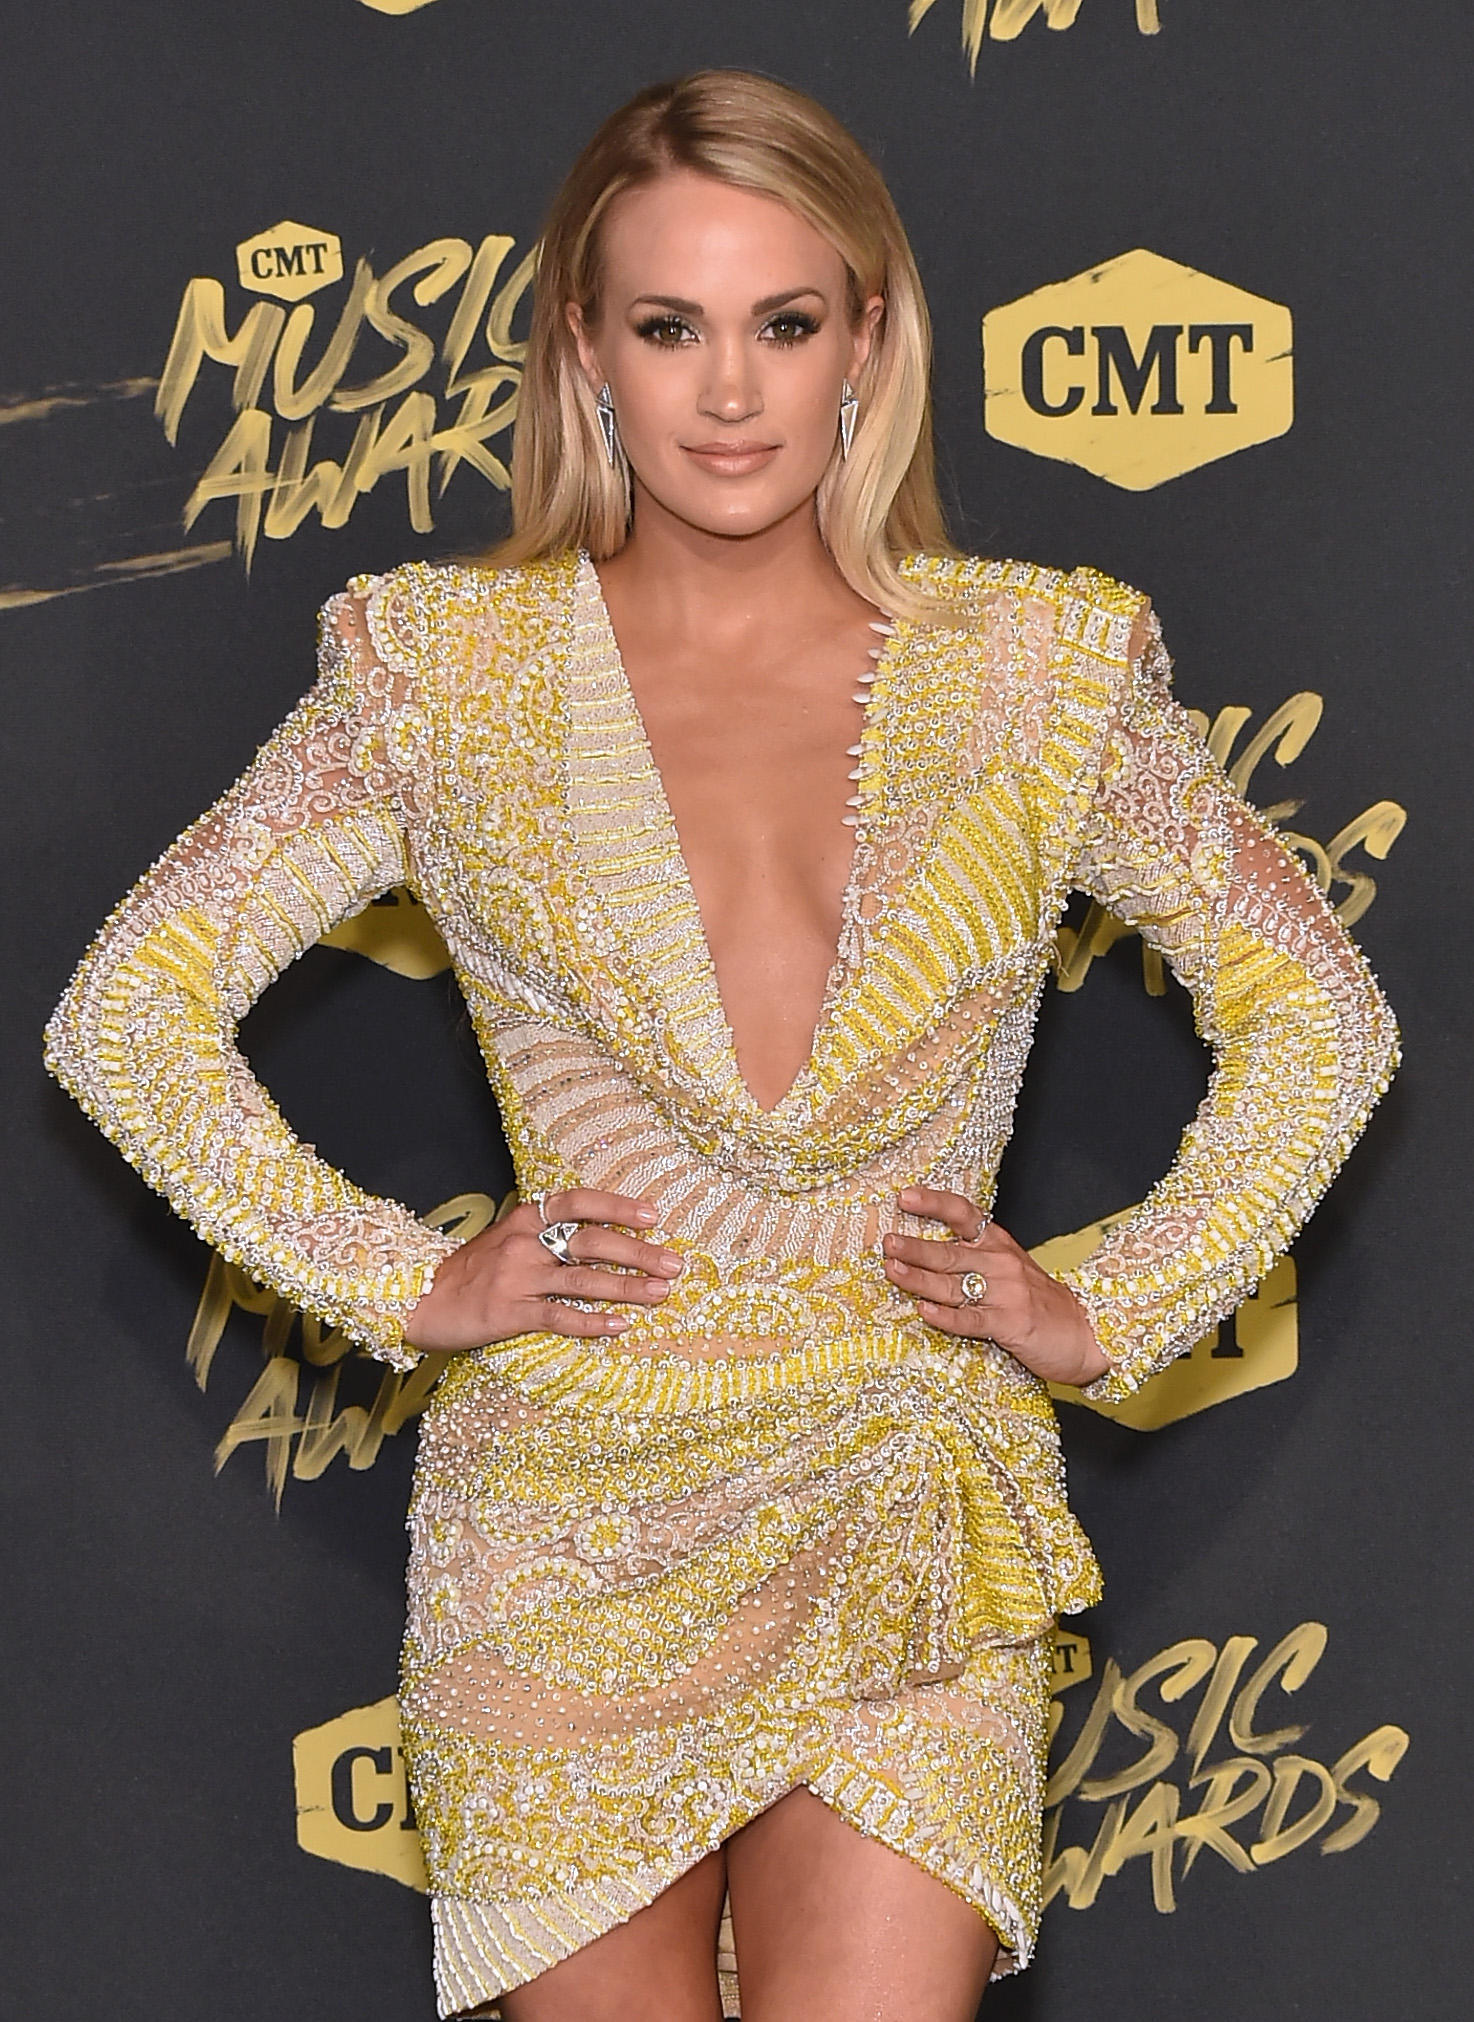 Carrie Underwood attends the 2018 CMT Music Awards at Bridgestone Arena on June 6, 2018 in Nashville, Tennessee.